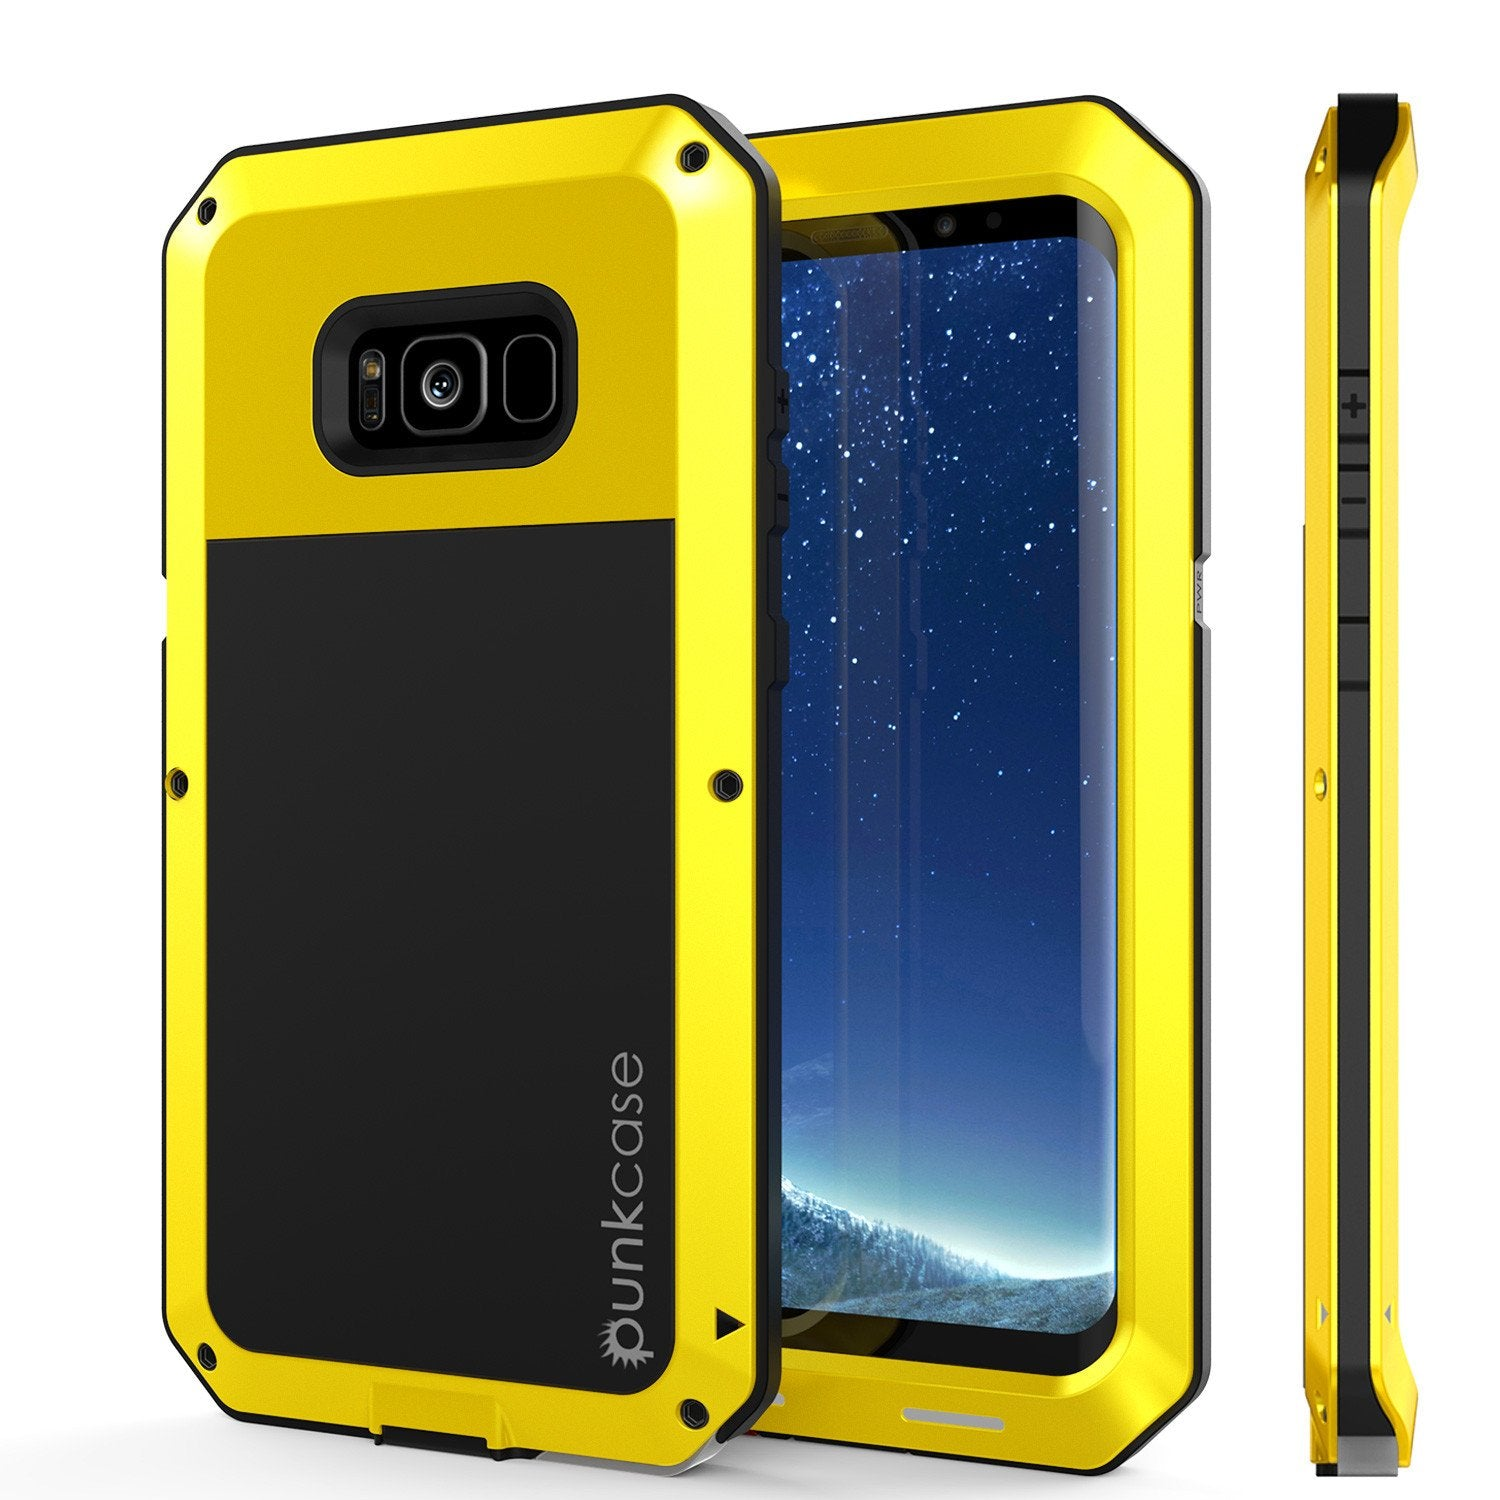 separation shoes 8cbfc a997a Galaxy Note 8 Case, PUNKcase Metallic Neon Shockproof Slim Metal Armor Case  [Yellow]